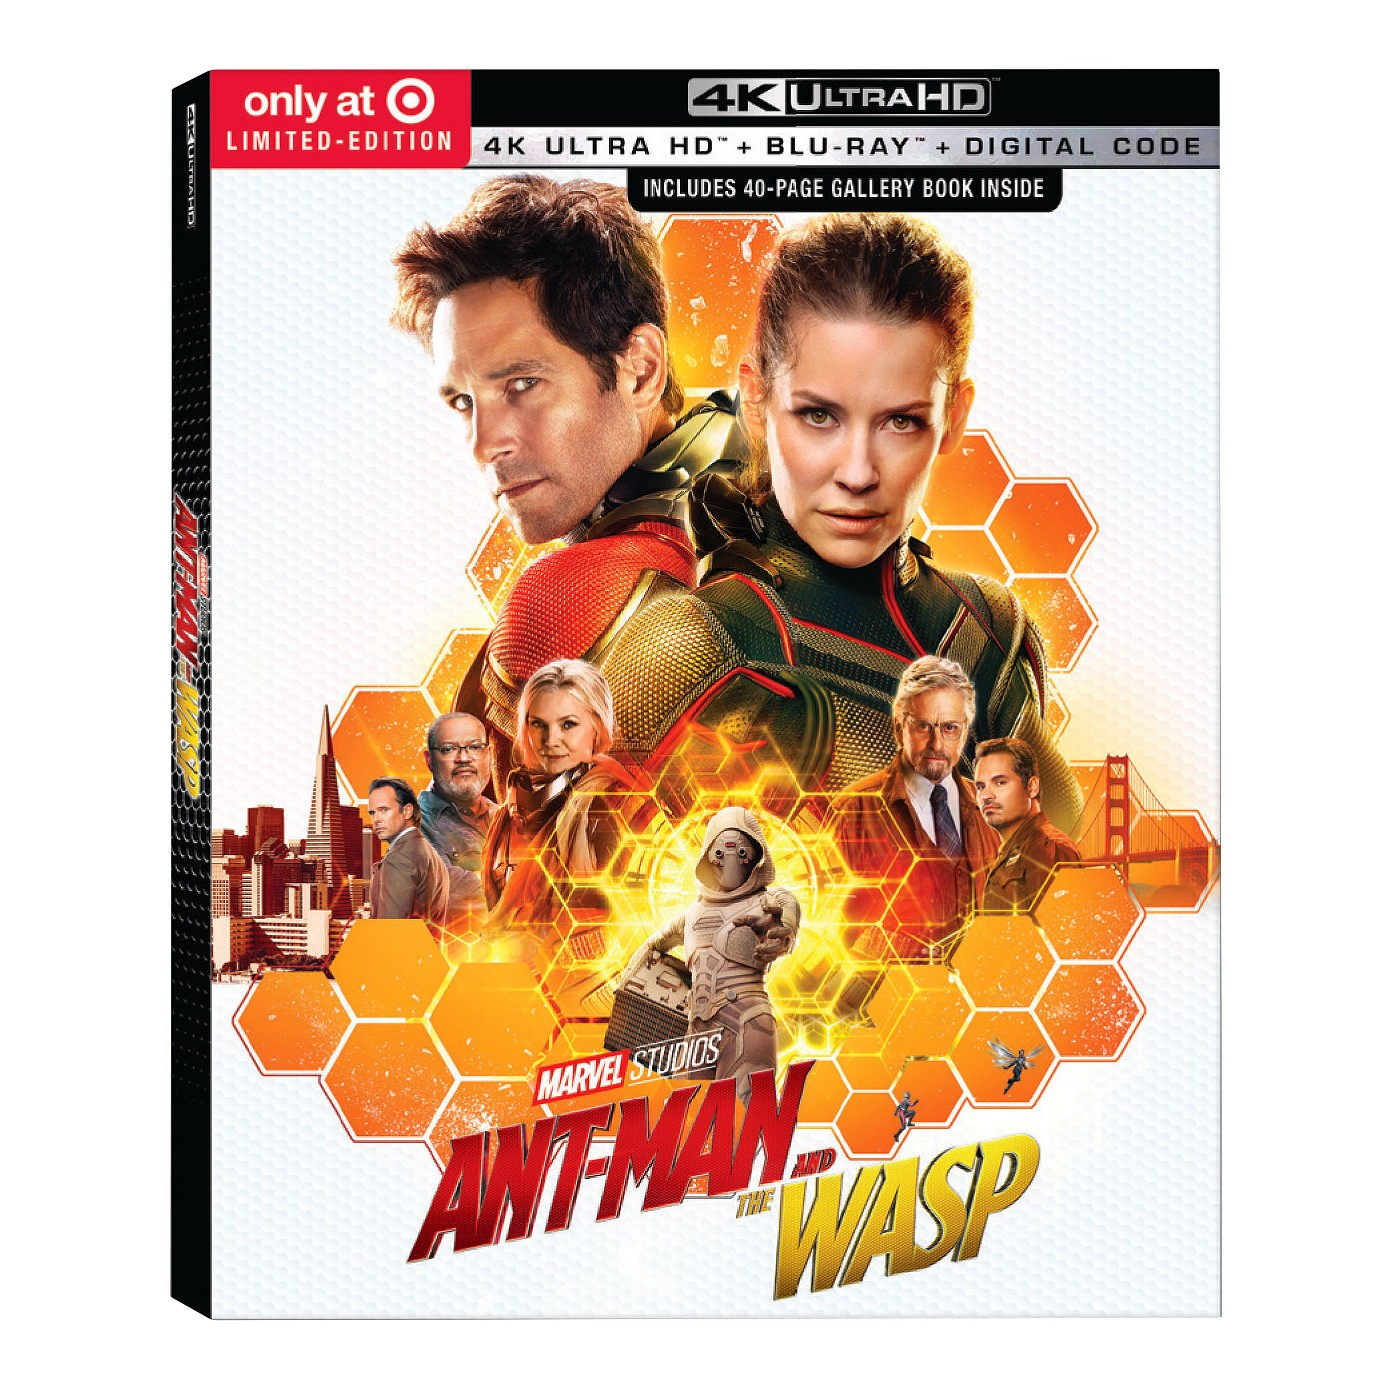 Ant-Man & the Wasp 2-Disc (Target Exclusive) (4K/UHD) - image 1 of 1